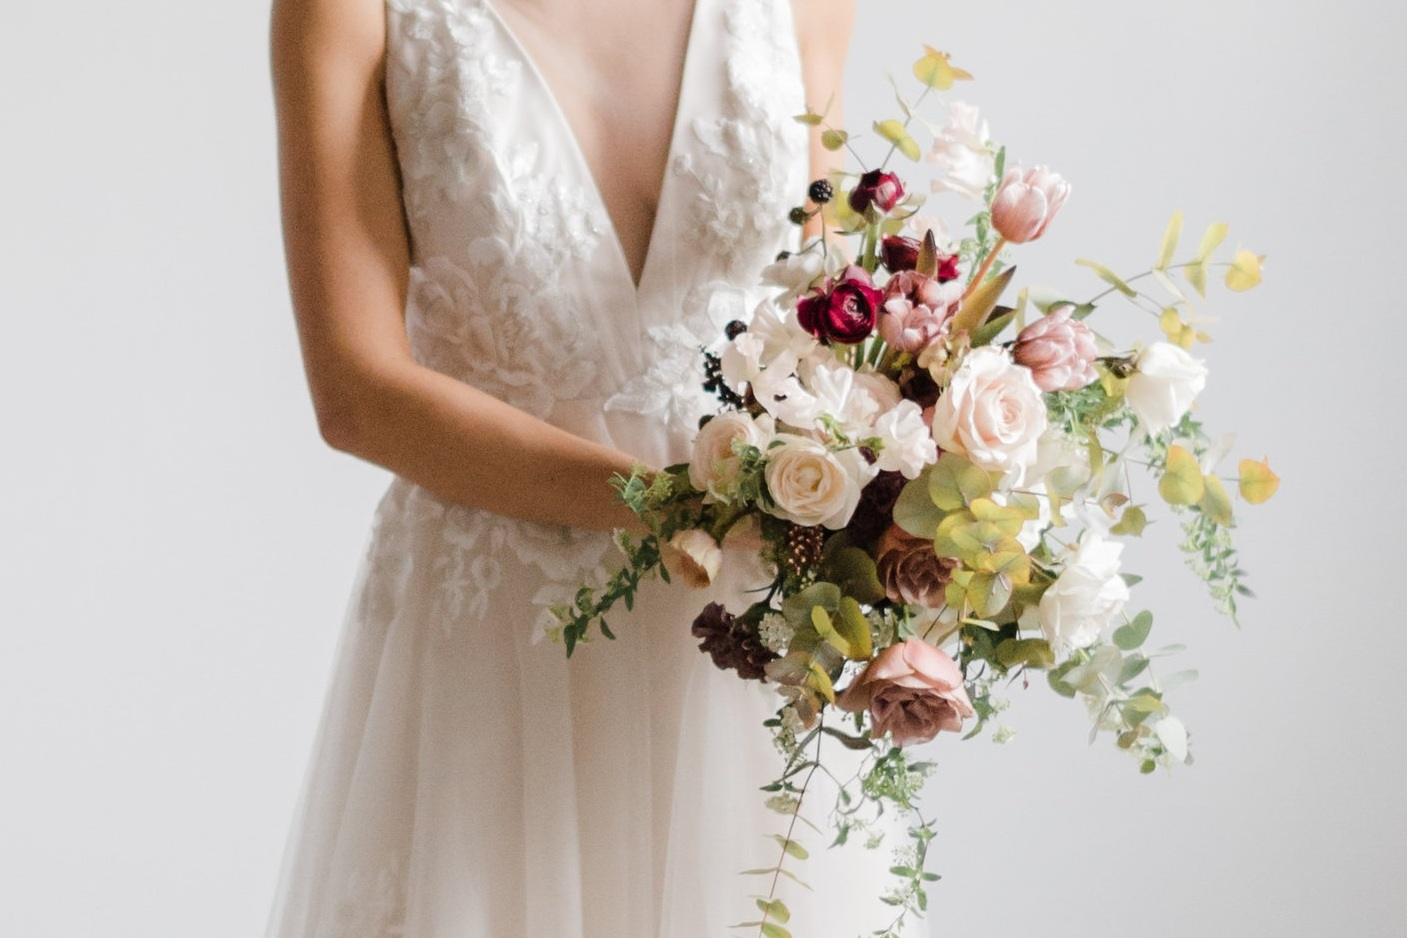 Moody+blush%2C+burgundy+bouquet+with+eucalyptus+by+Luster+Floral+Design+at+Sinclair+and+Moore+Workshop%2C+photo+by+Kristen+Honeycutt+Photo+Co